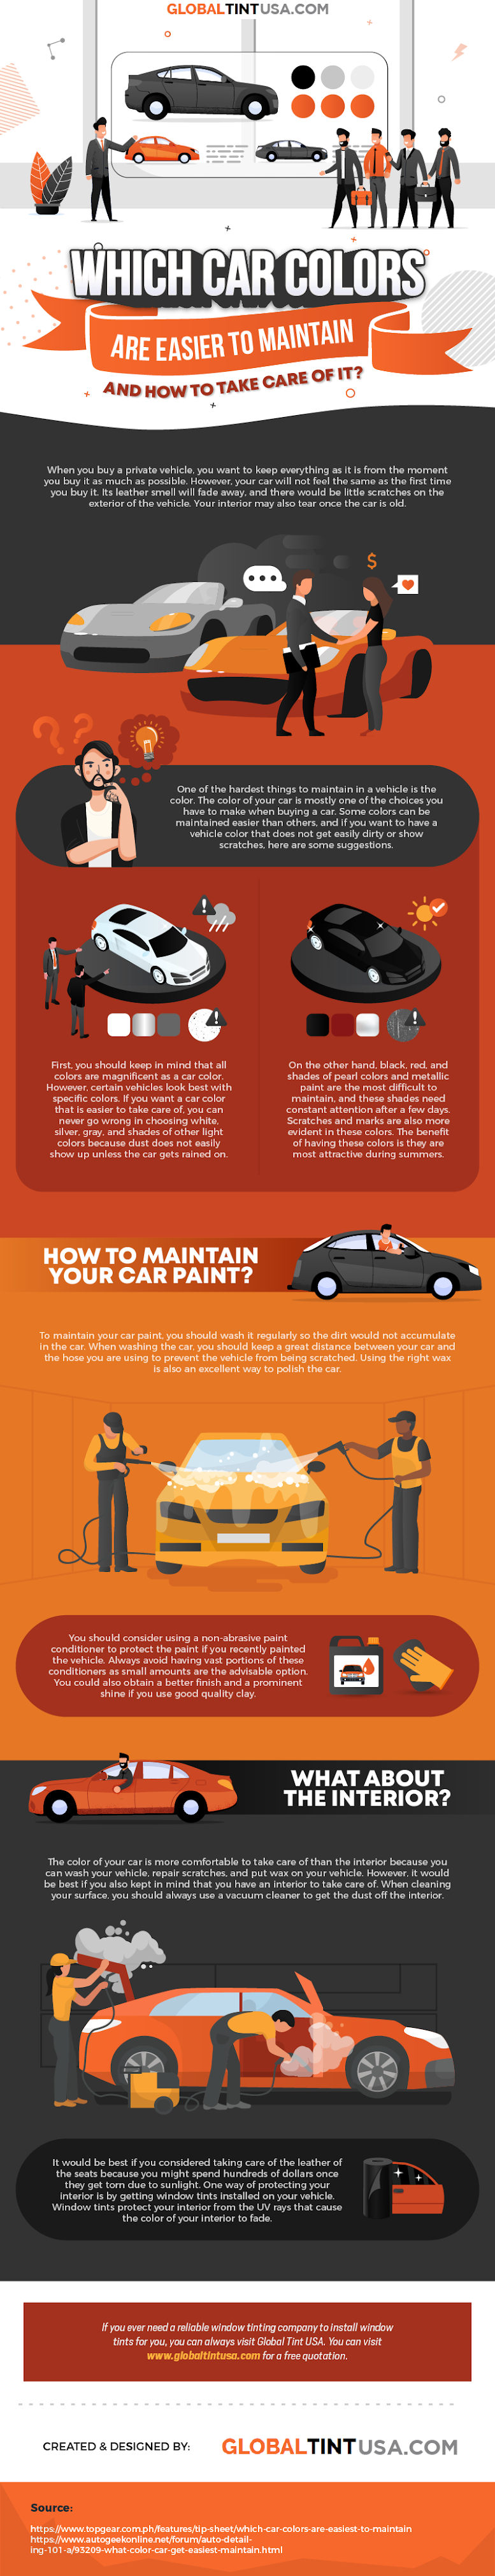 Which Car Colors Are Easier to Maintain and How to Take Care of It? #infographic